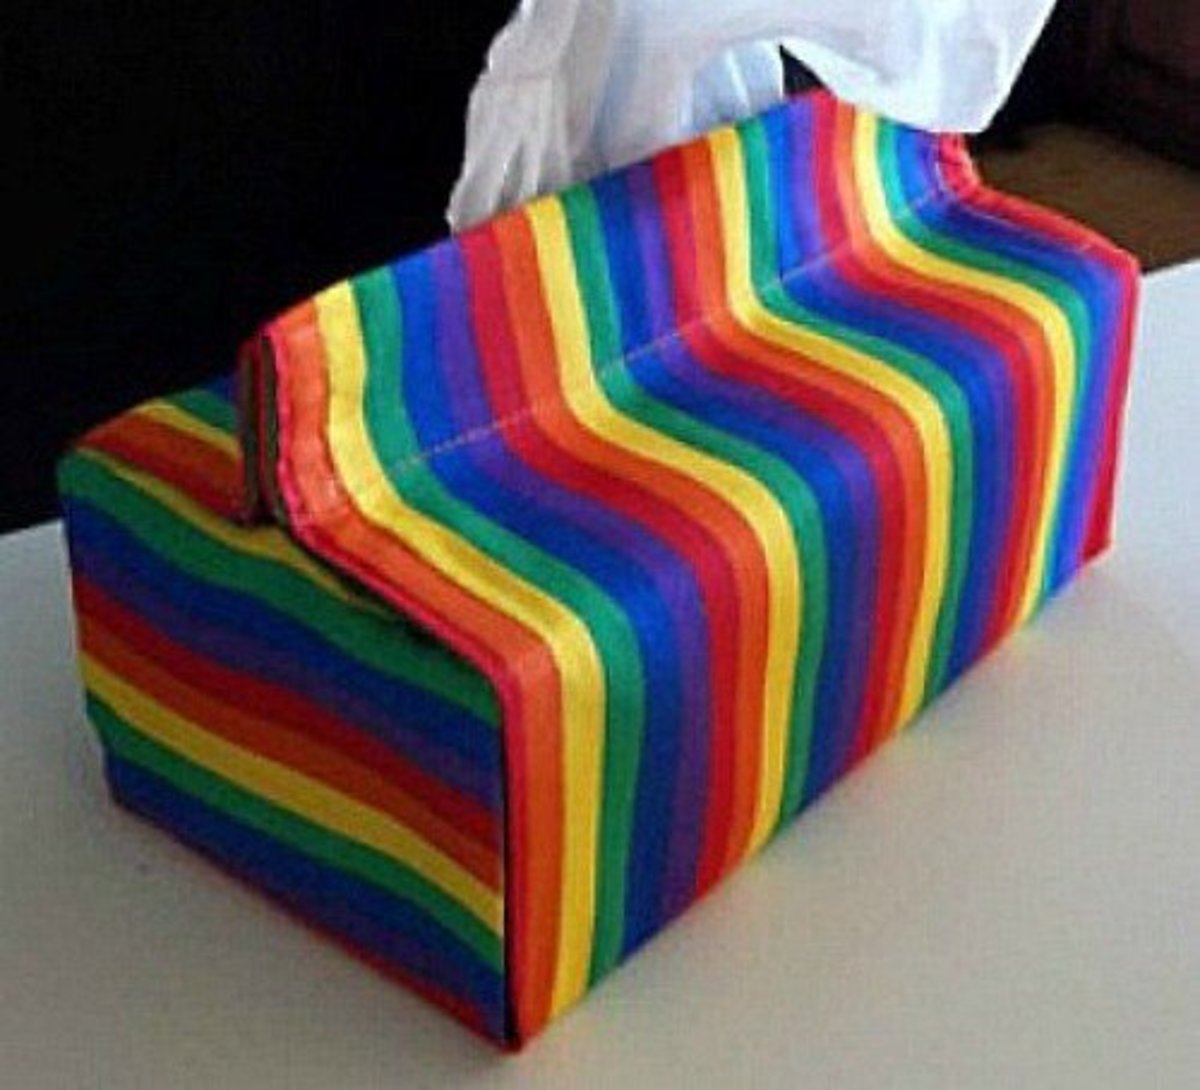 Make Reusable Tissue Box Covers: Free Patterns and Tutorial